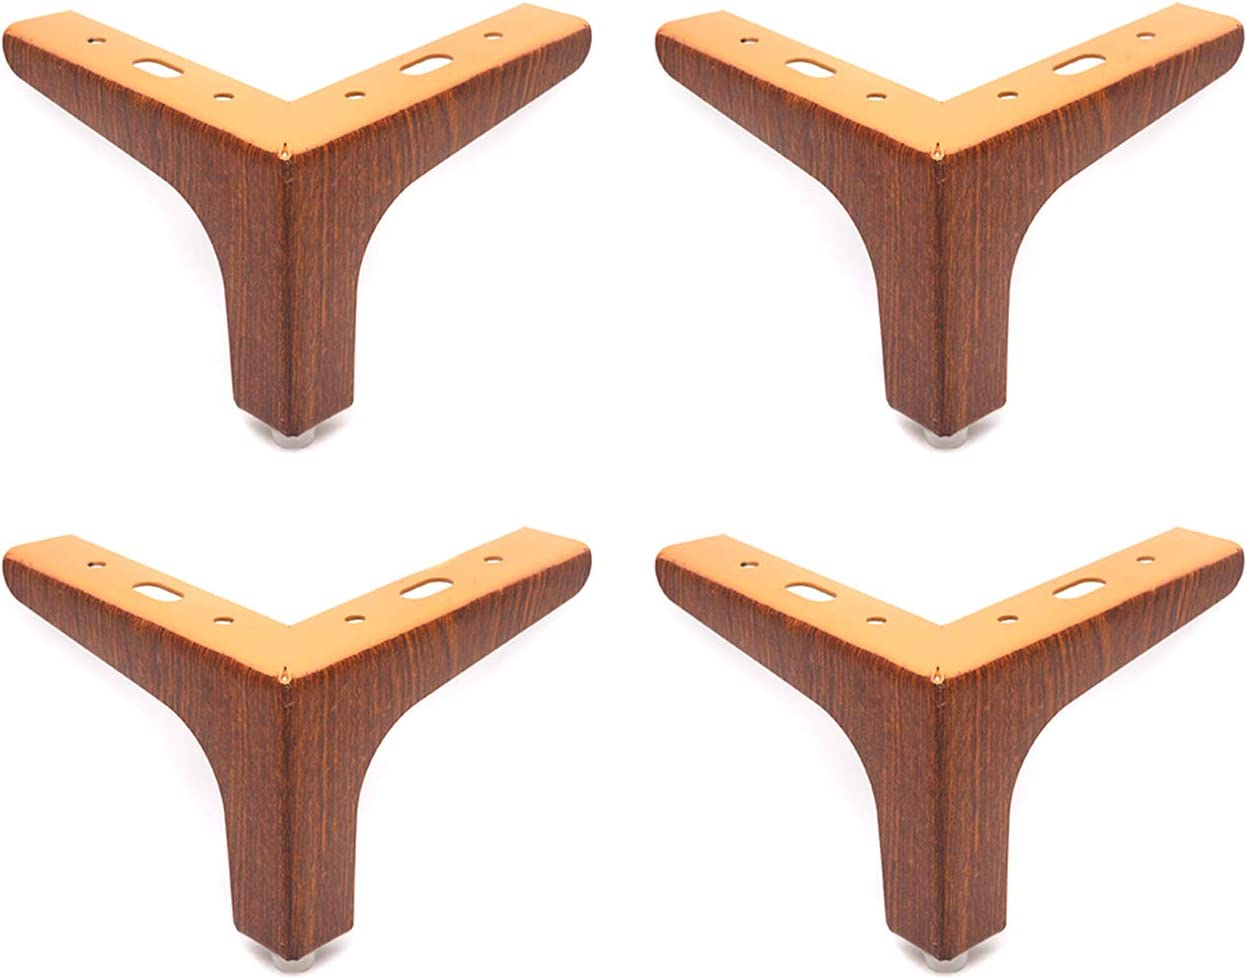 """Tulead Iron Triangle Furniture Legs Couch Legs Heavy Duty Wood Grain Brown Sofa Feet 4"""" Height Pack of 4 with Mounting Screws"""